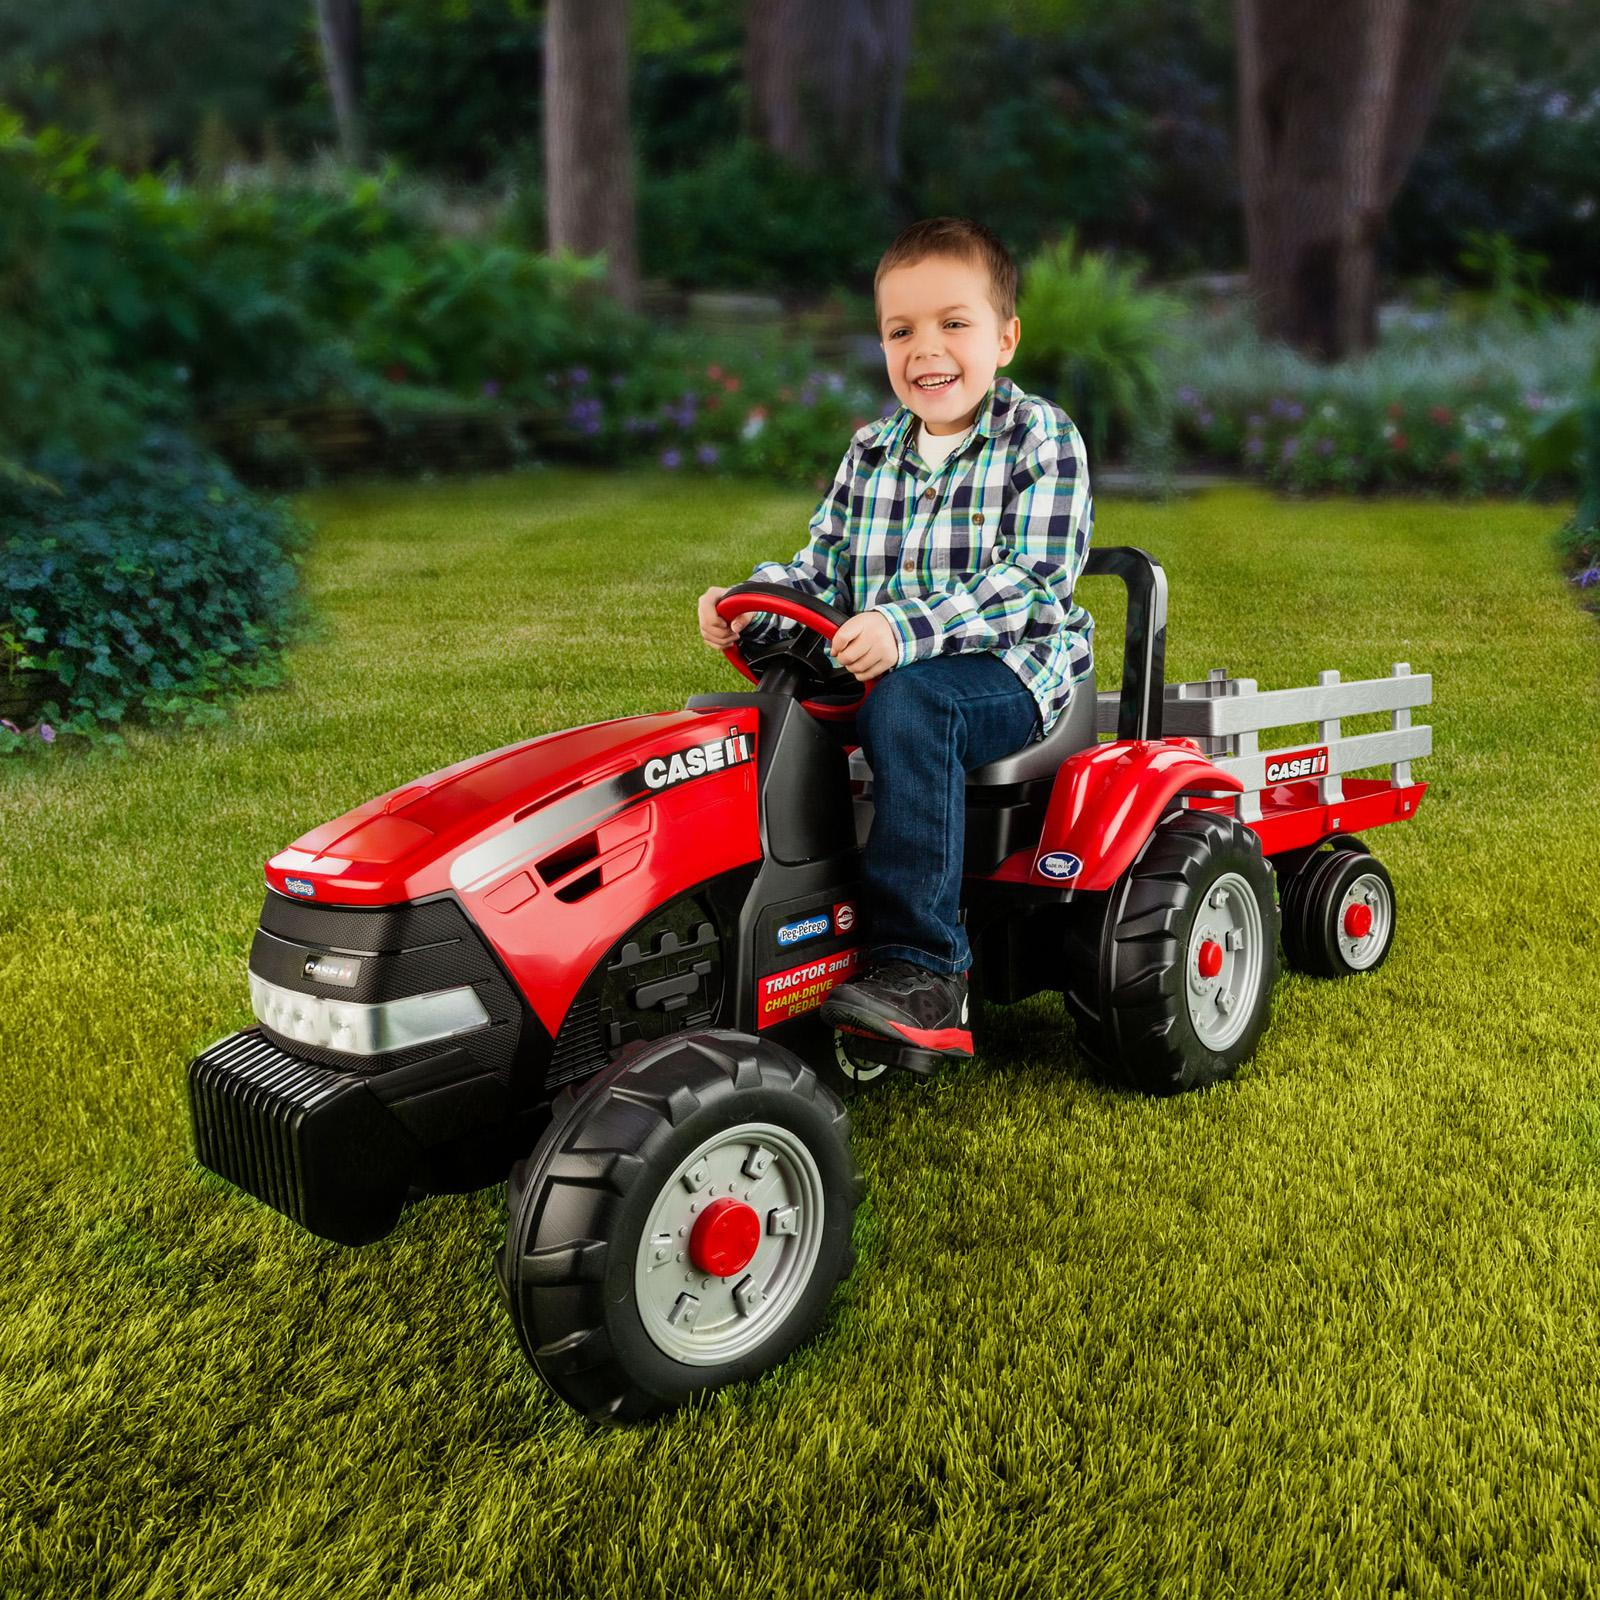 Peg-Perego Case IH Tractor & Trailer Pedal Riding Toy - I...